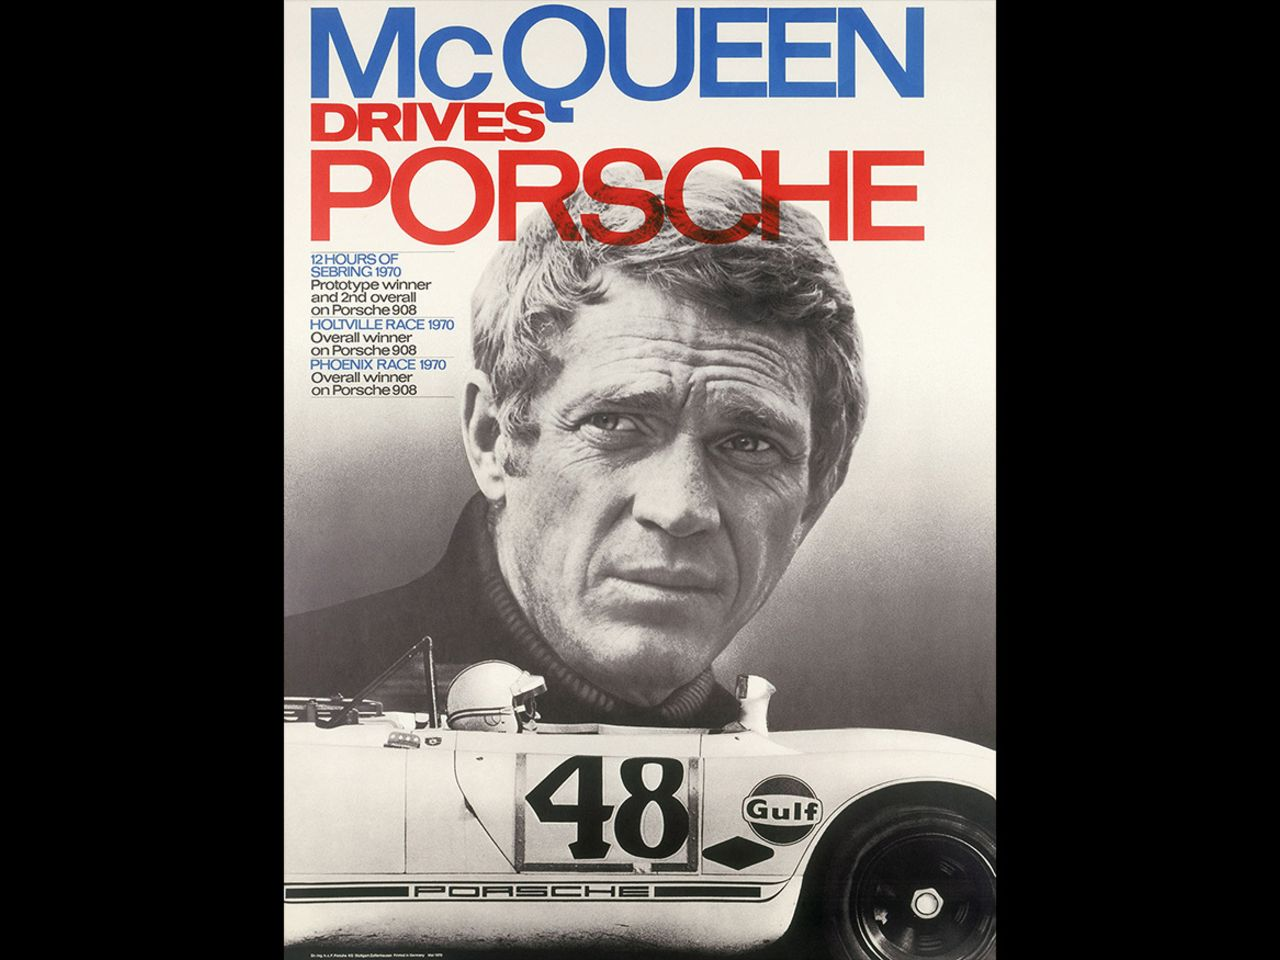 One poster was dedicated to passionate racing driver Steve McQueen. It shows the Porsche 908 that gave McQueen his greatest racing success, a second-place finish in Sebring in 1970.